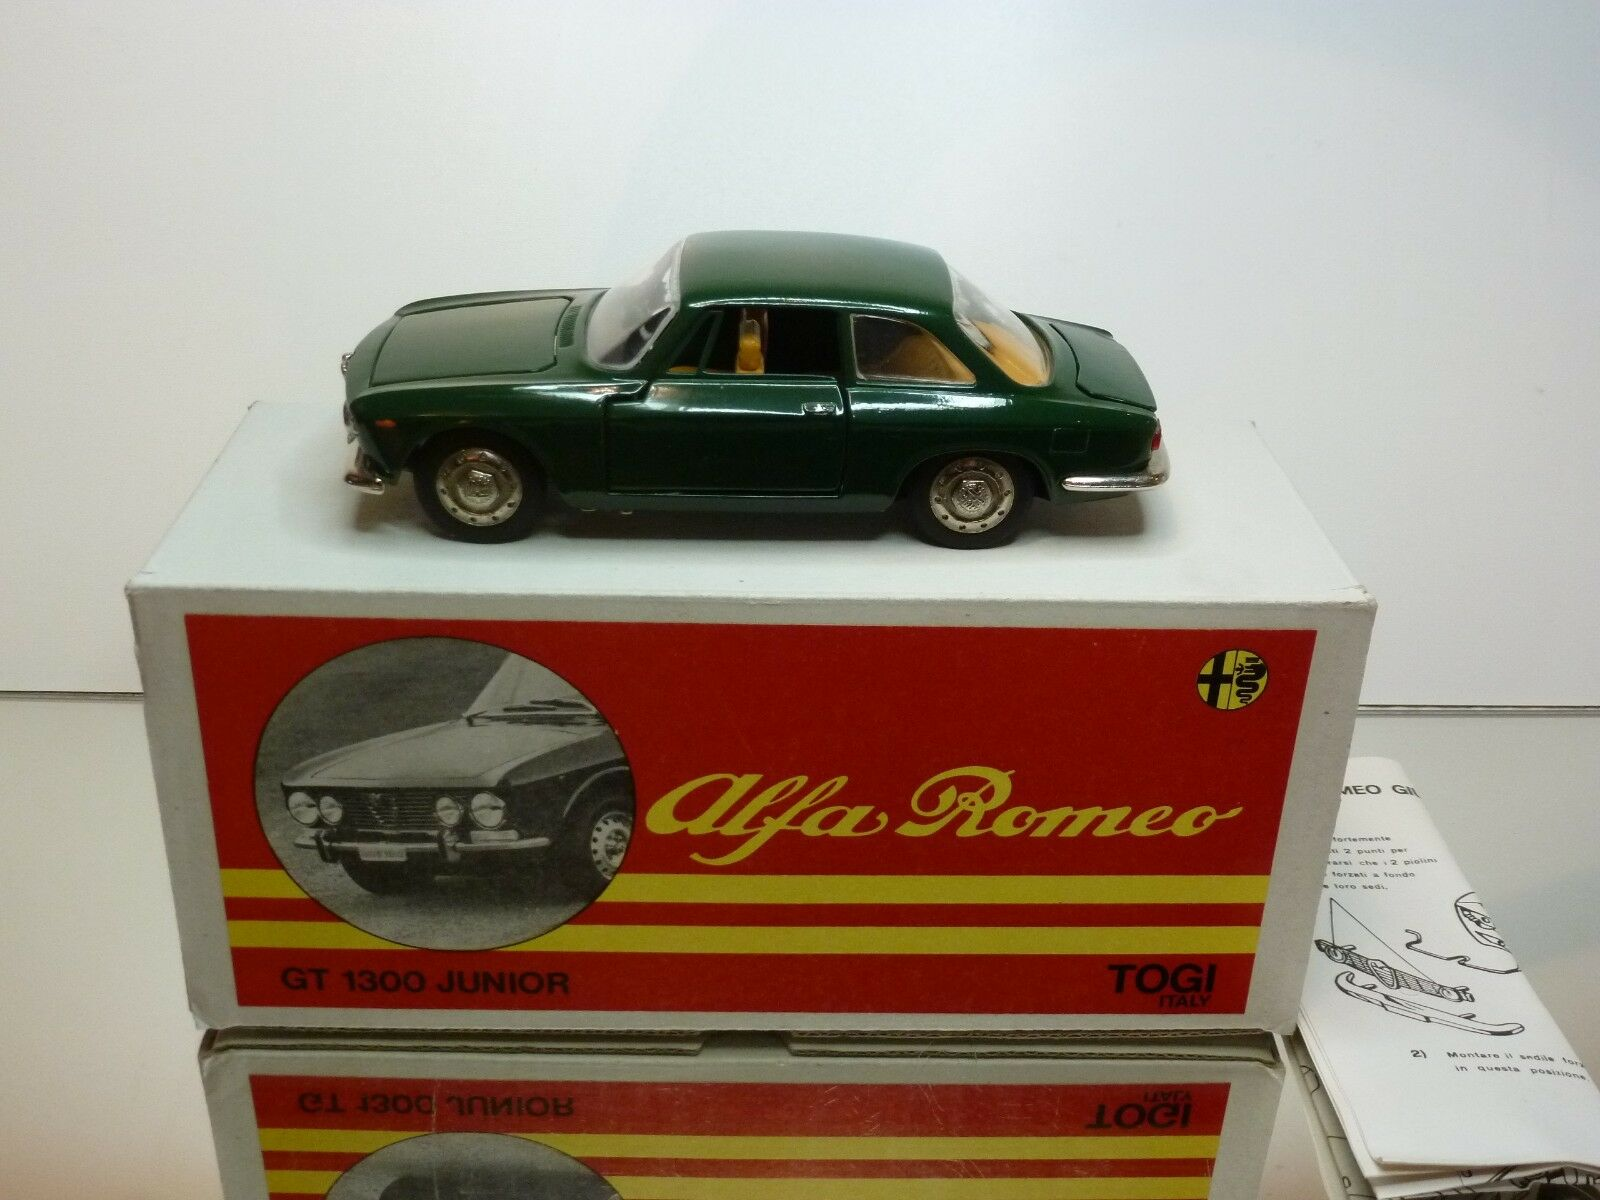 TOGI 8 65 ALFA ROMEO GIULIA GT - DARK verde 1 23 - EXCELLENT CONDITION IN BOX